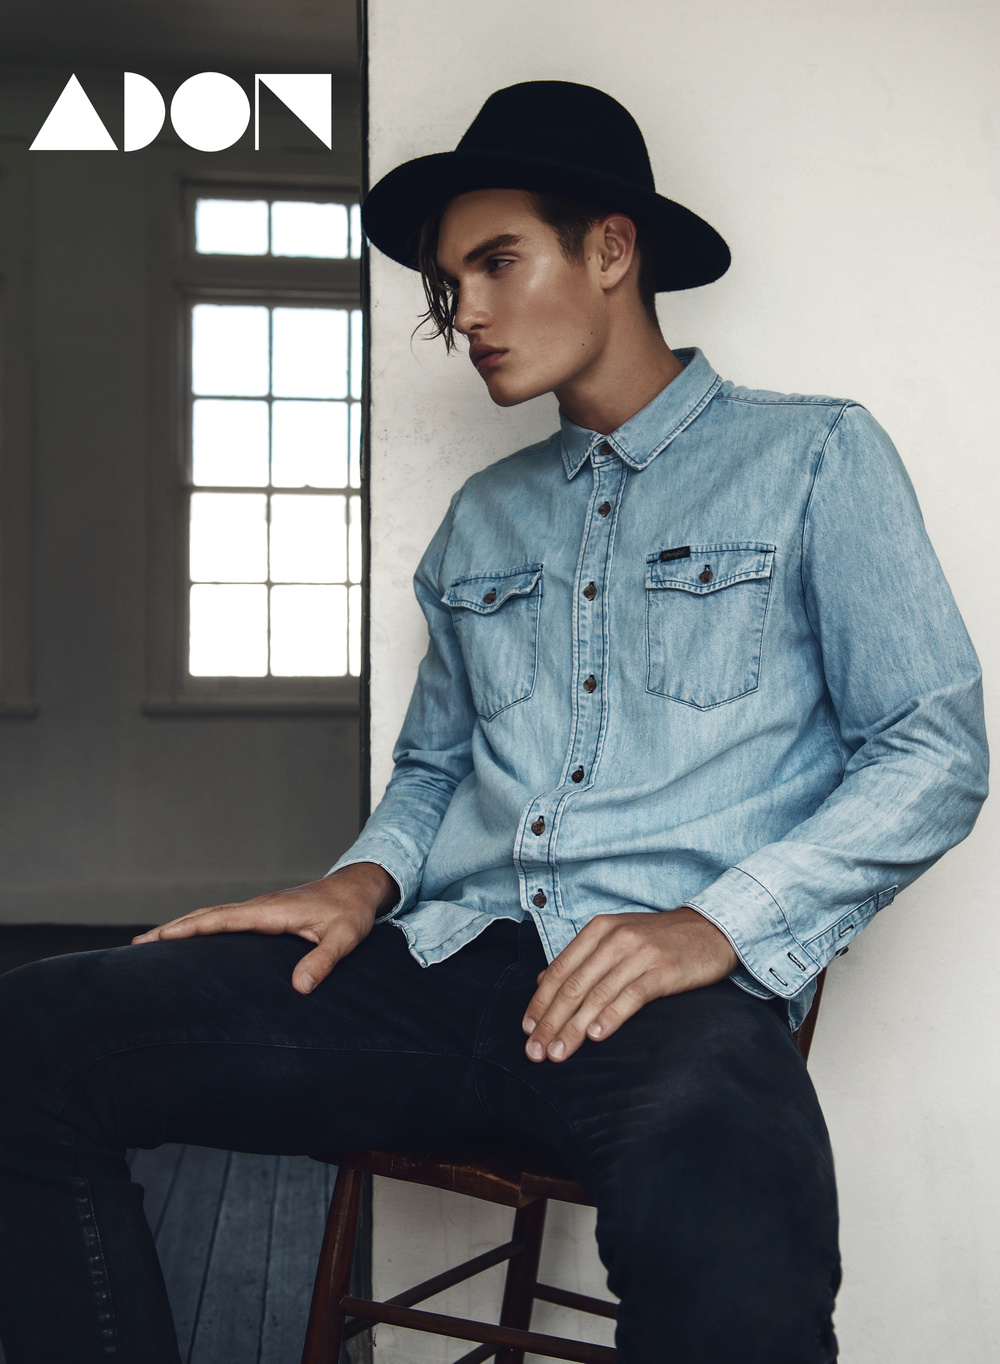 Shirt – Wrangler, Jeans – Nudie Jeans Co